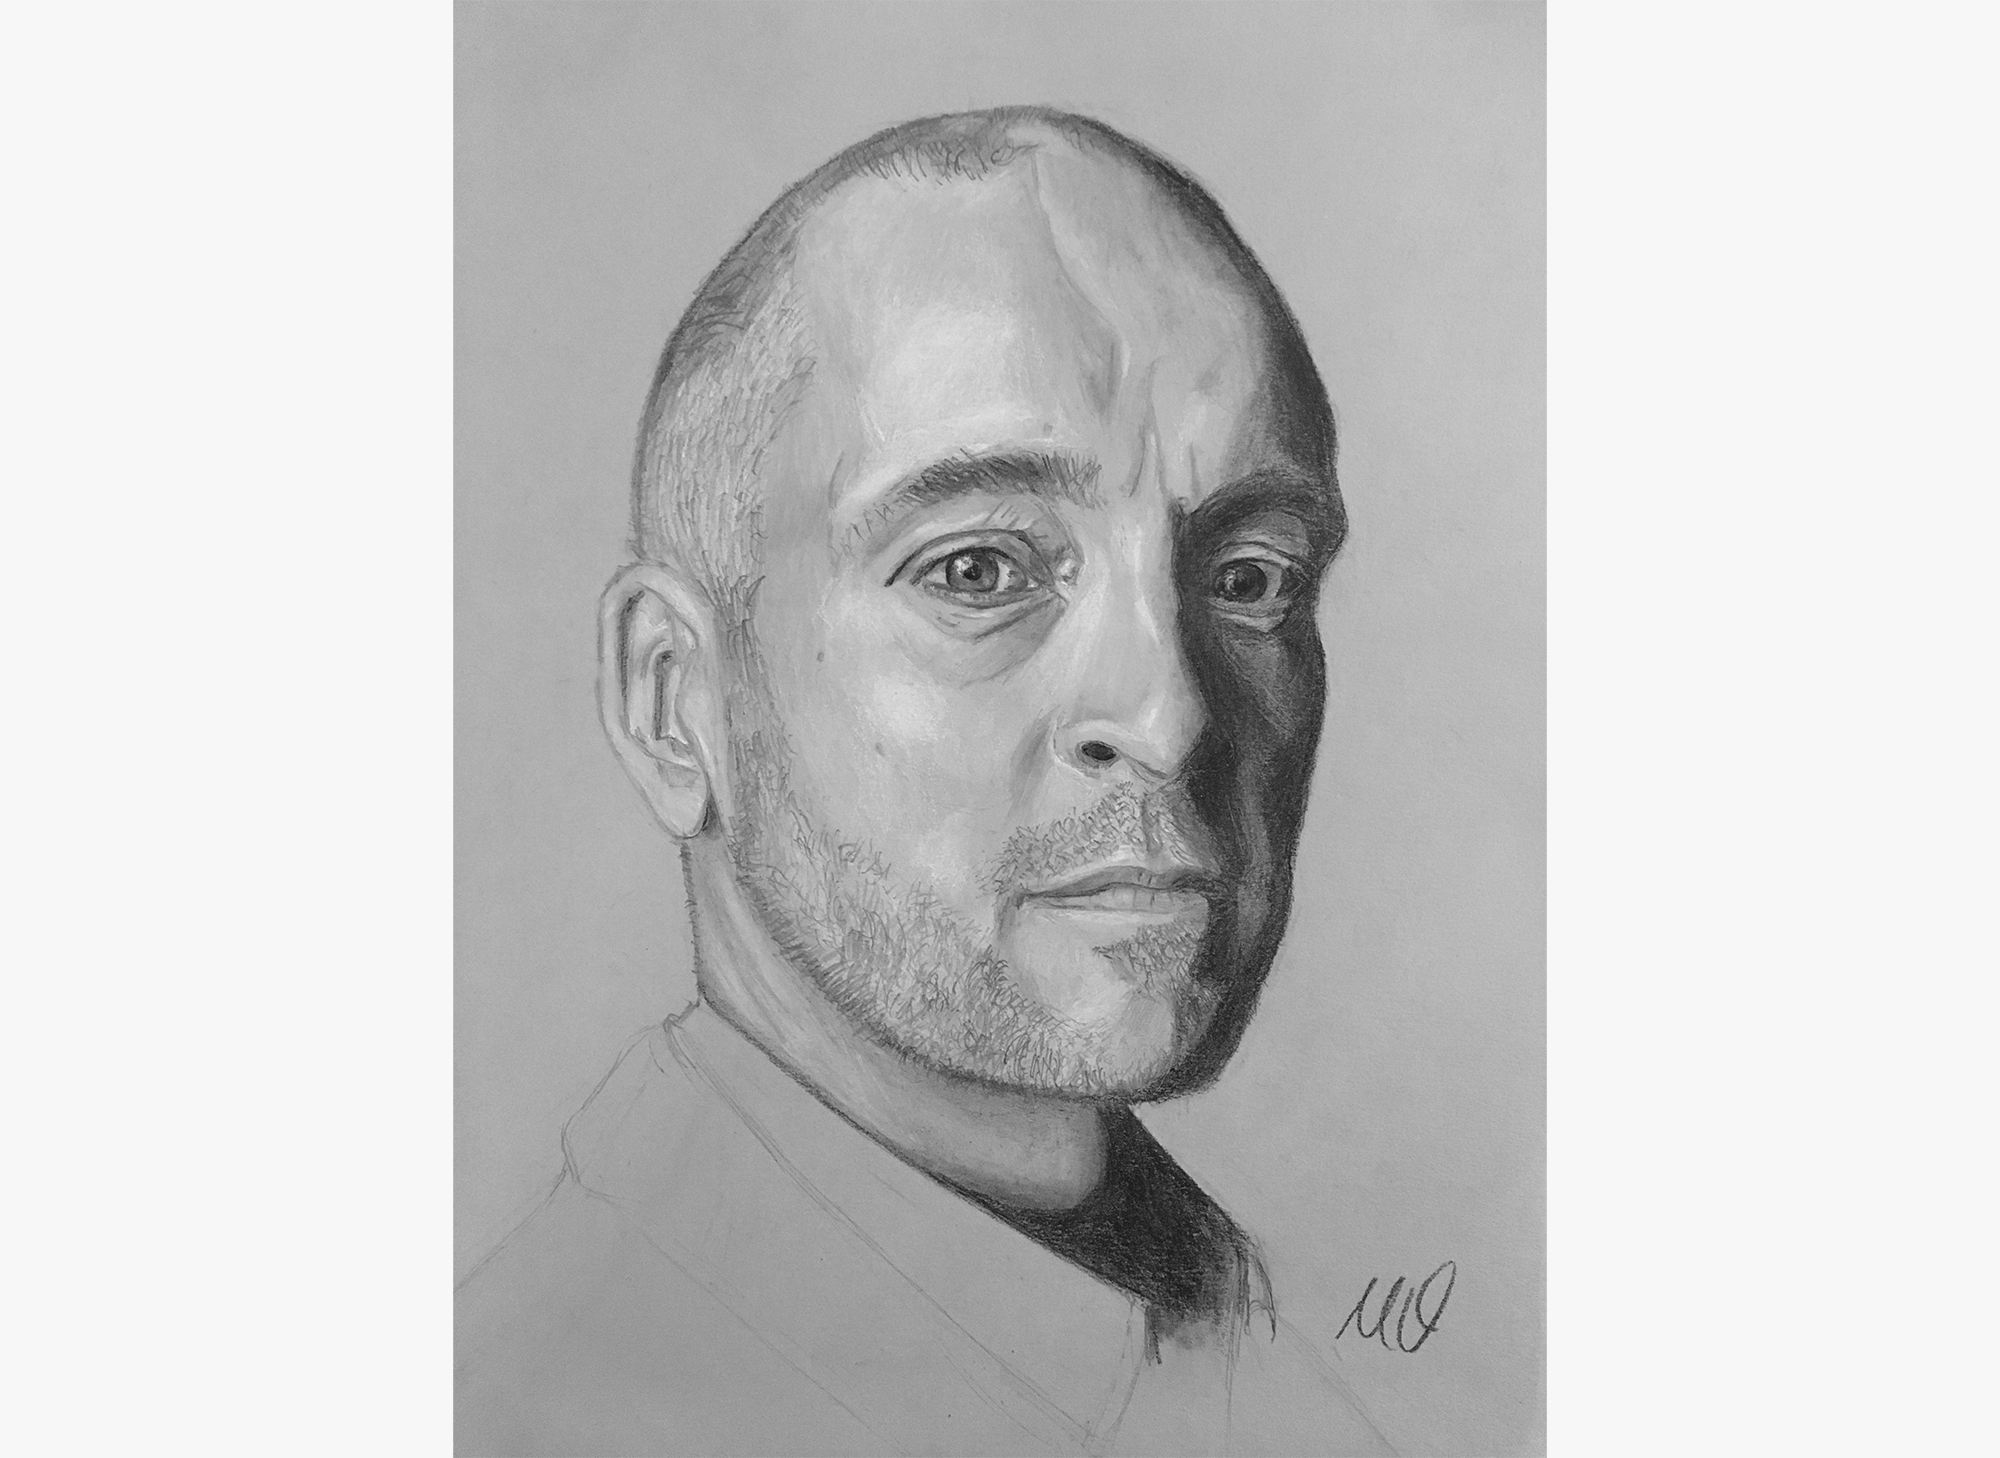 How To Draw Straight Line In Art Studio : How i learned to draw realistic portraits in only days